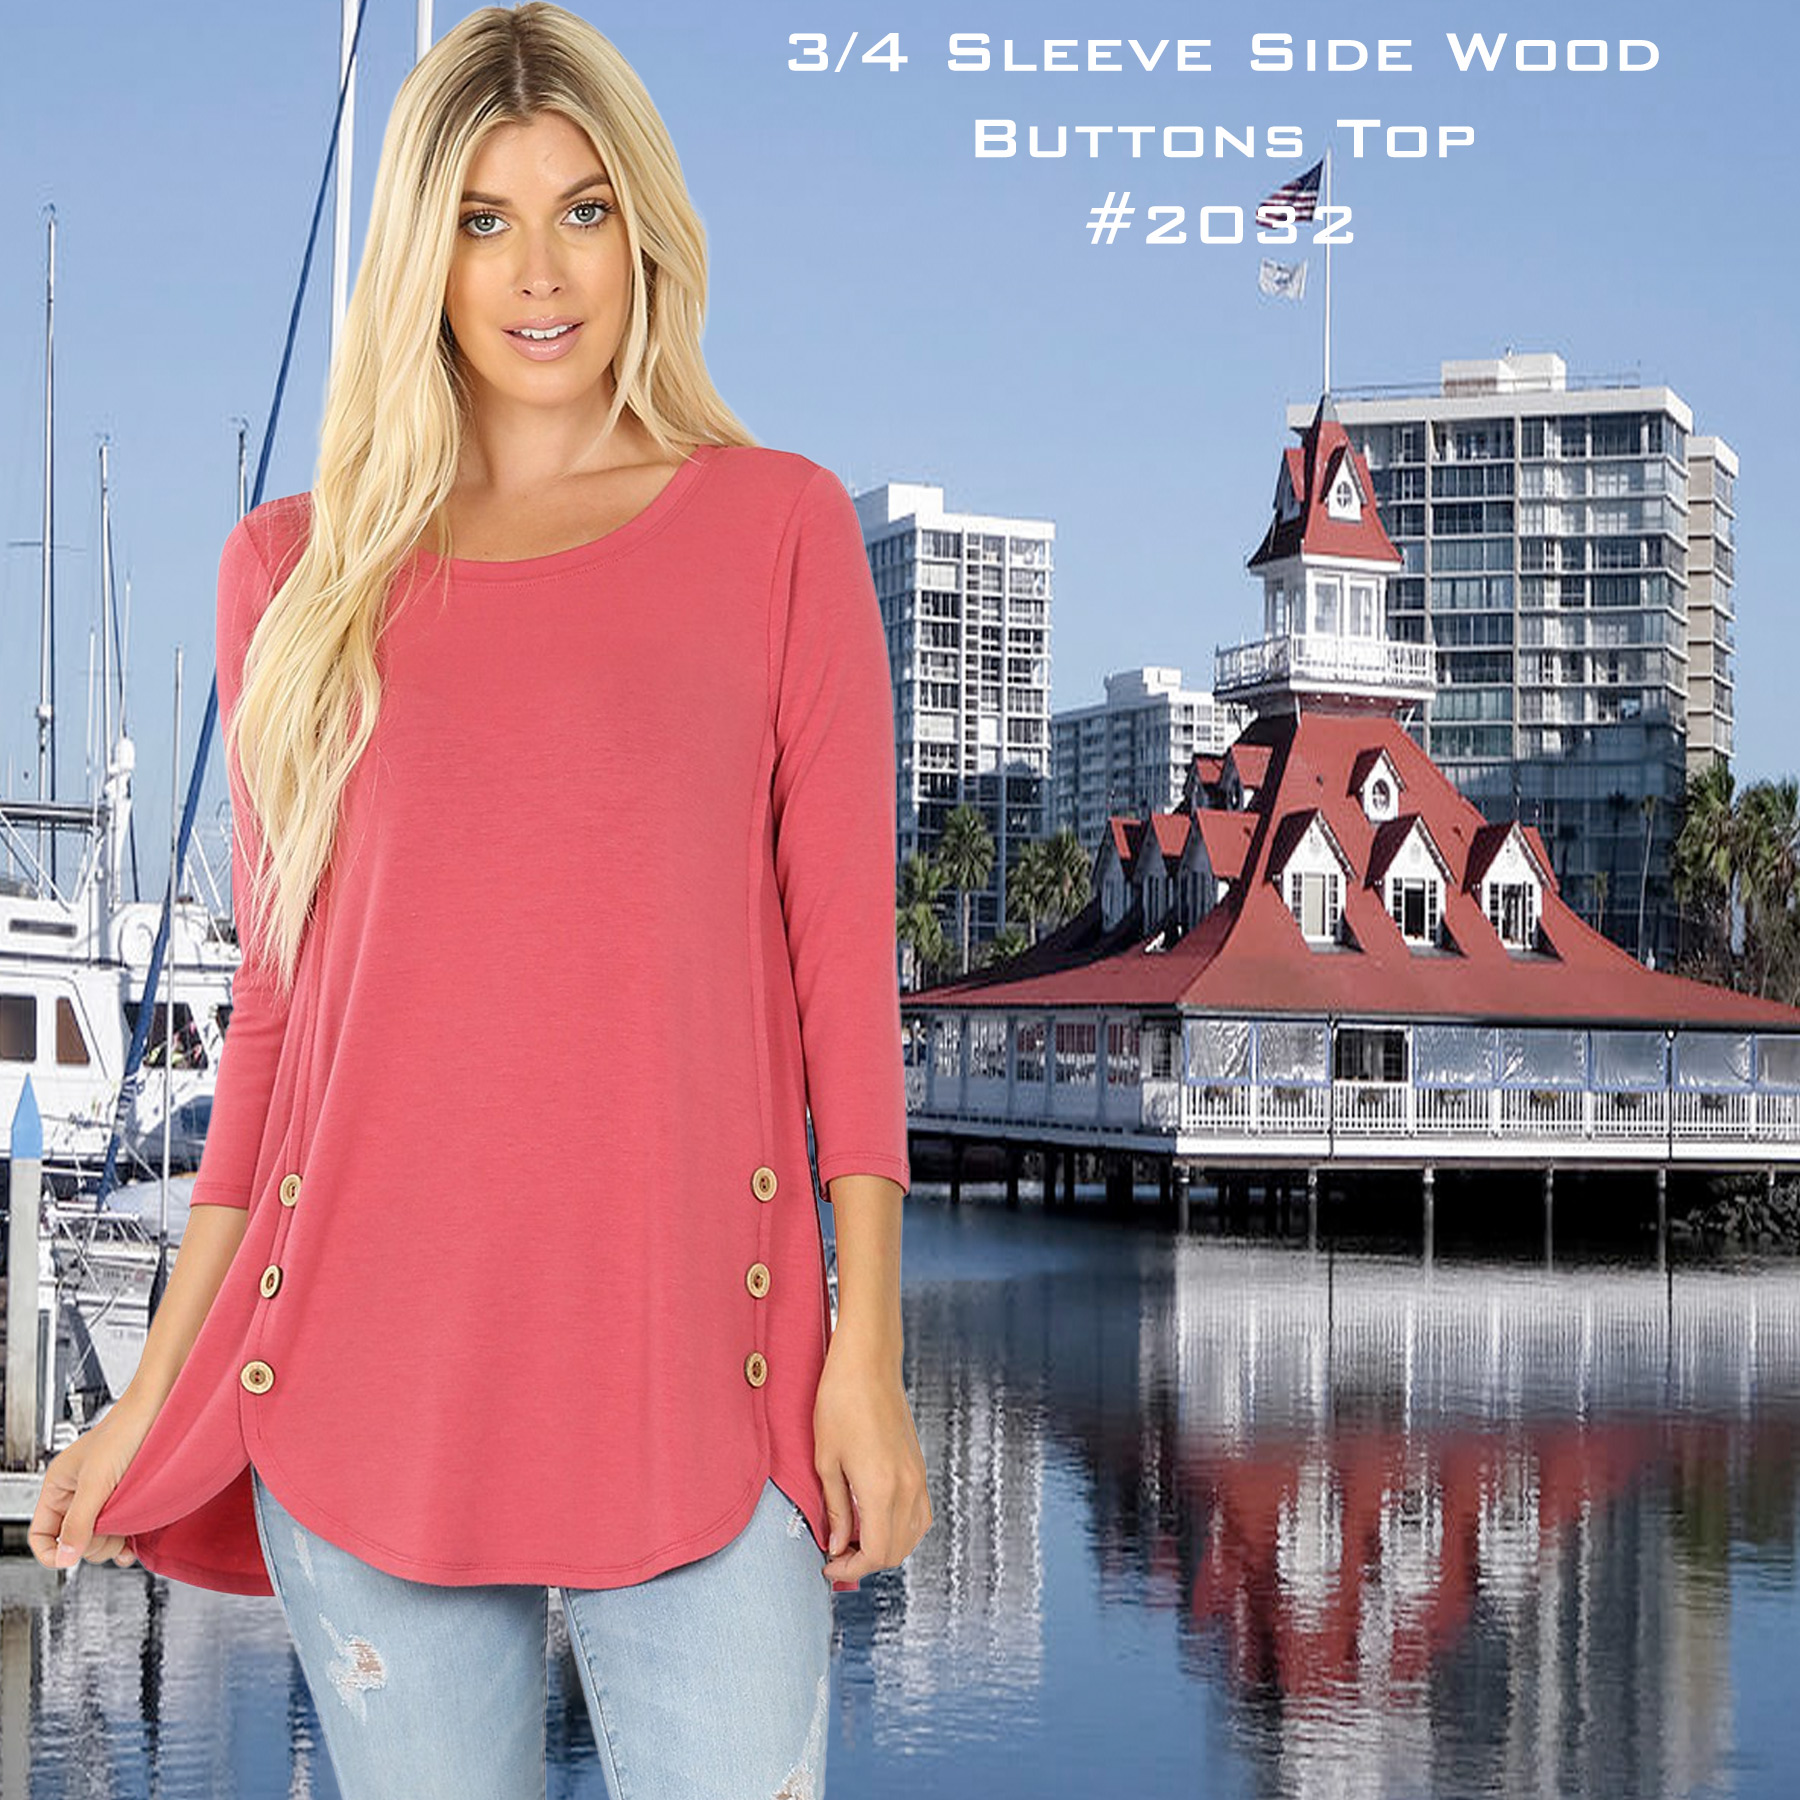 3/4 Sleeve Side Wood Buttons Top 2032